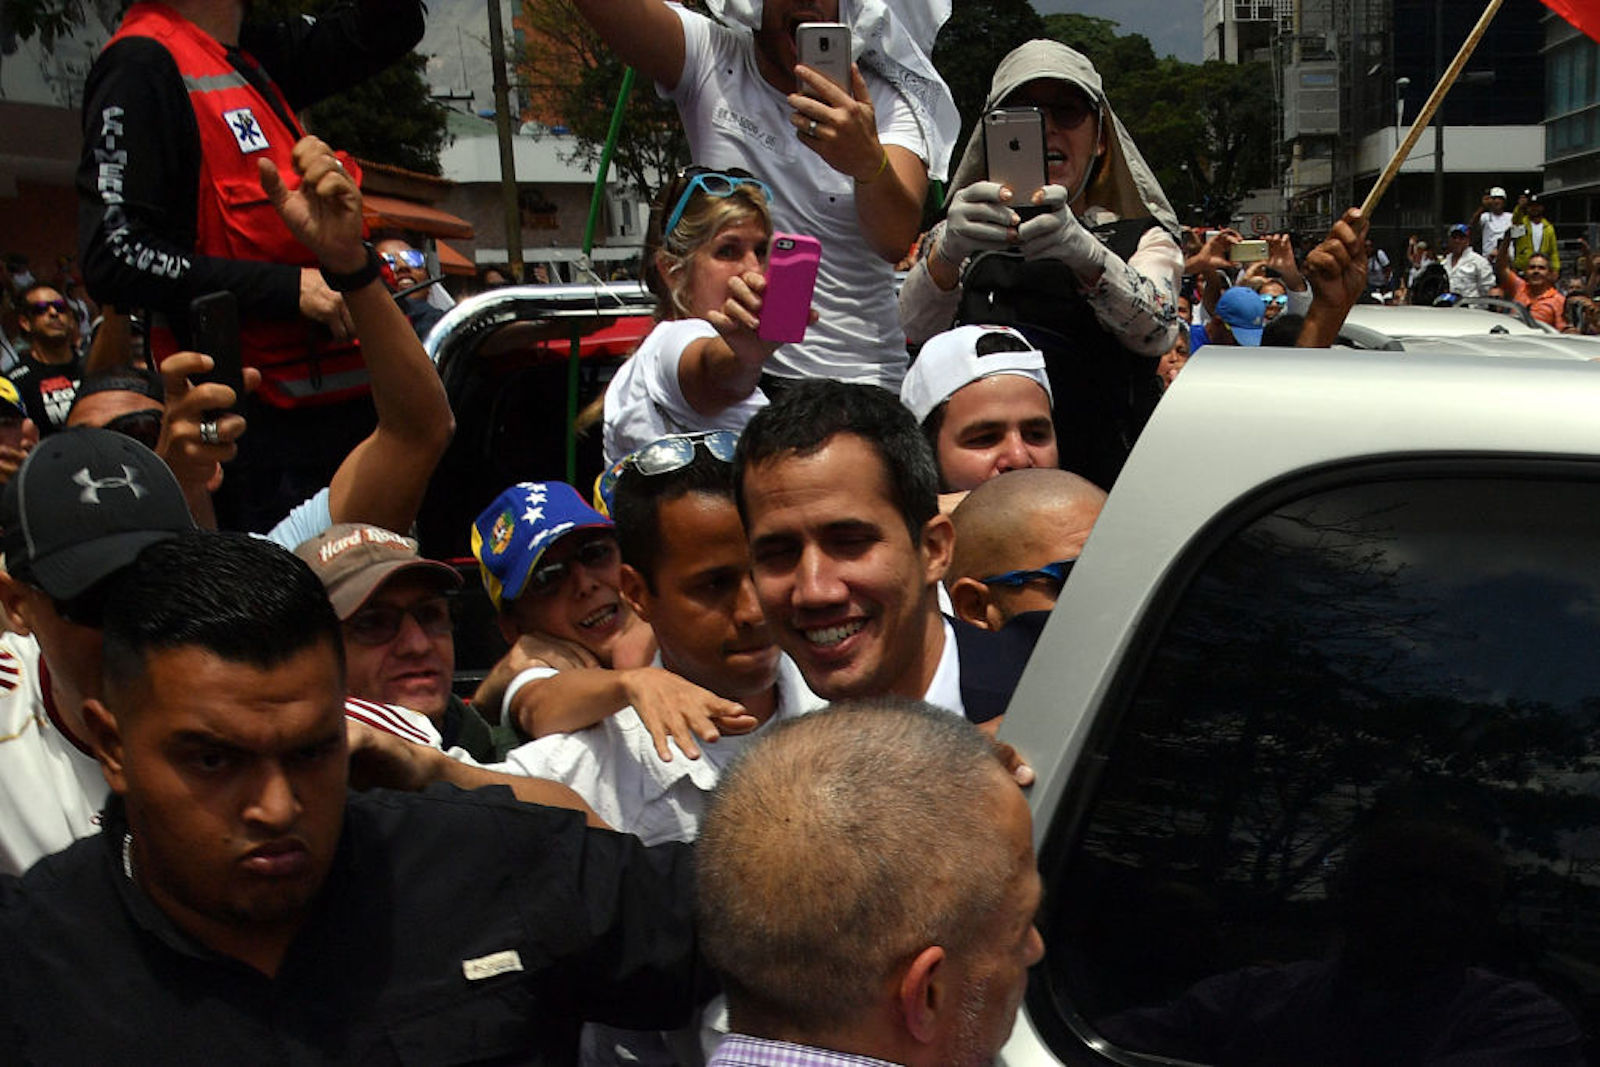 Venezuelan opposition leader and self-proclaimed acting president Juan Guaido (C) is surrounded by supporters upon his arrival in Caracas on March 4, 2019. - Venezuela's opposition leader Juan Guaido was mobbed by supporters, media and the ambassadors of allied countries as he returned to Caracas on Monday, defying the threat of arrest from embattled President Nicolas Maduro's regime. Just before his arrival, US Vice President Mike Pence sent a warning to Maduro to ensure Guaido's safety. (Photo by Yuri CORTEZ / AFP) (Photo credit should read YURI CORTEZ/AFP/Getty Images)